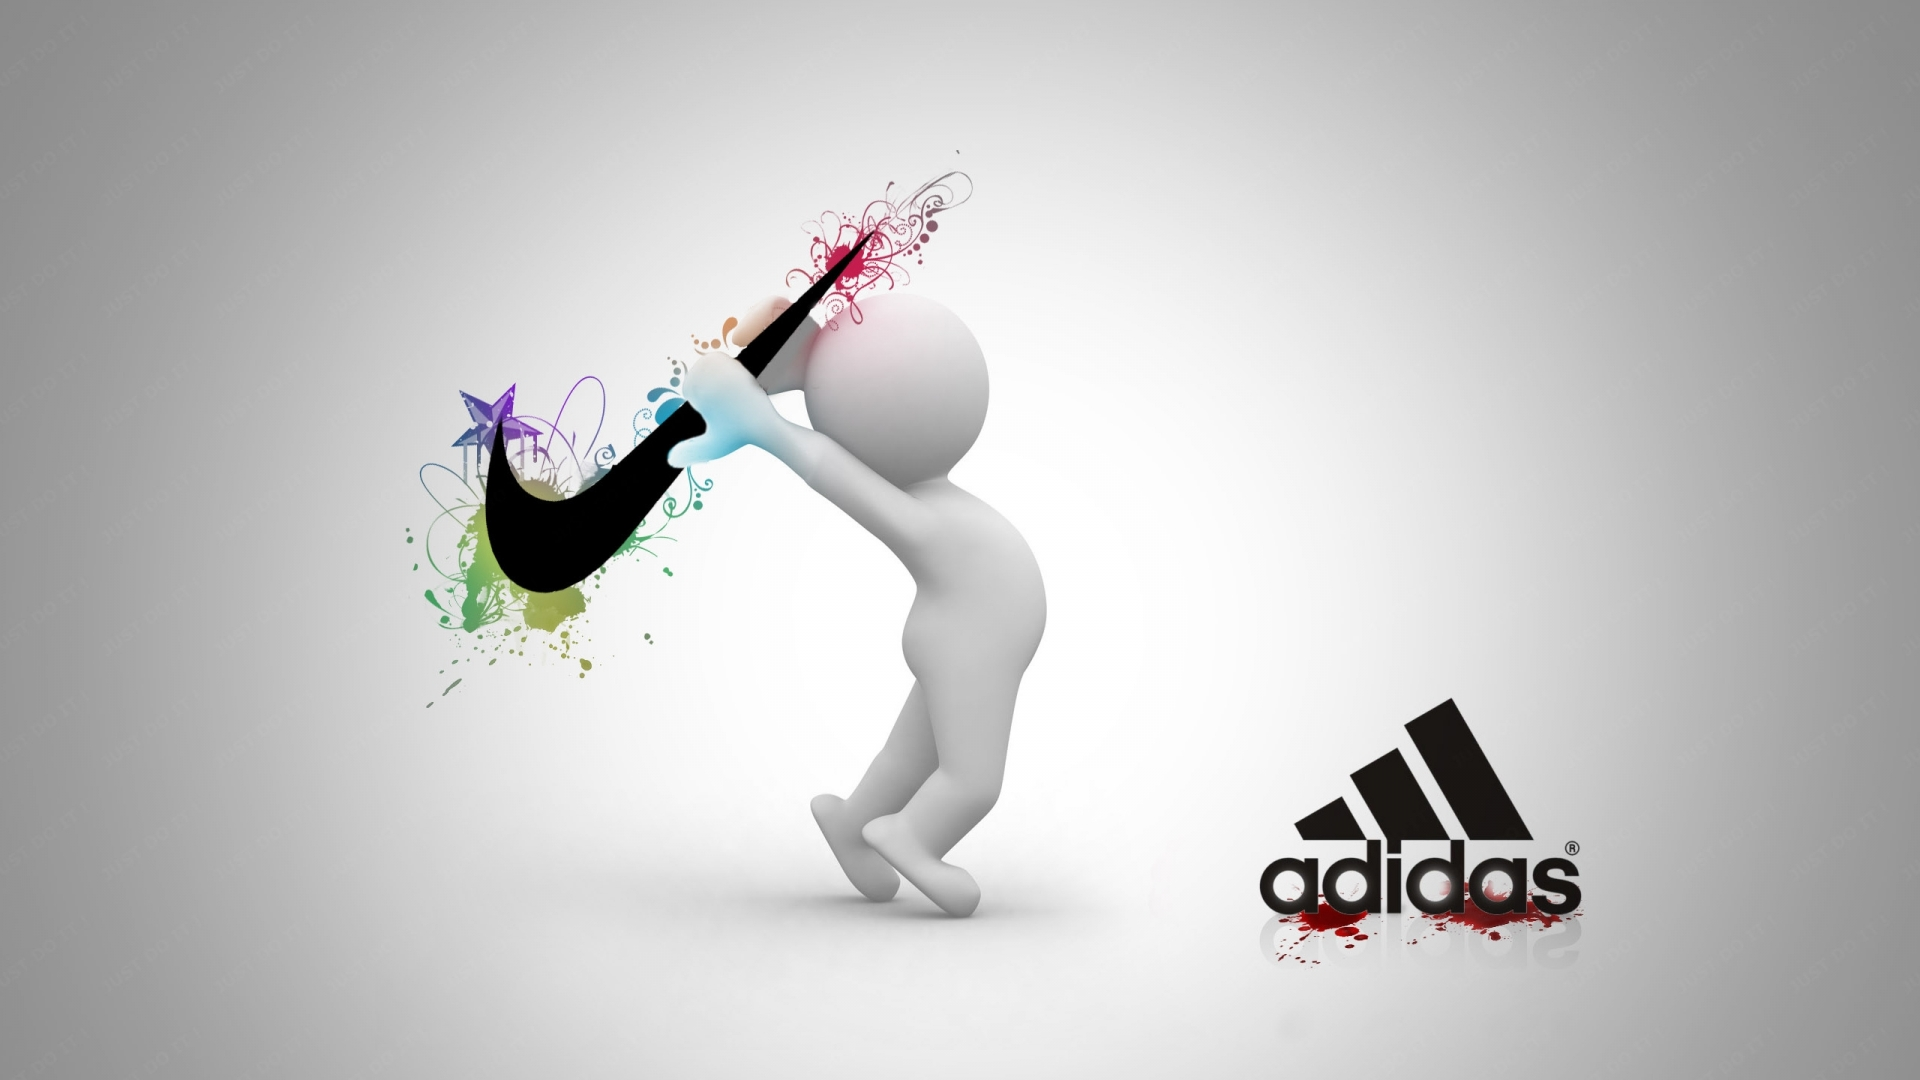 Nike hd wallpaper 1920x1080 54087 - Nike wallpaper hd ...